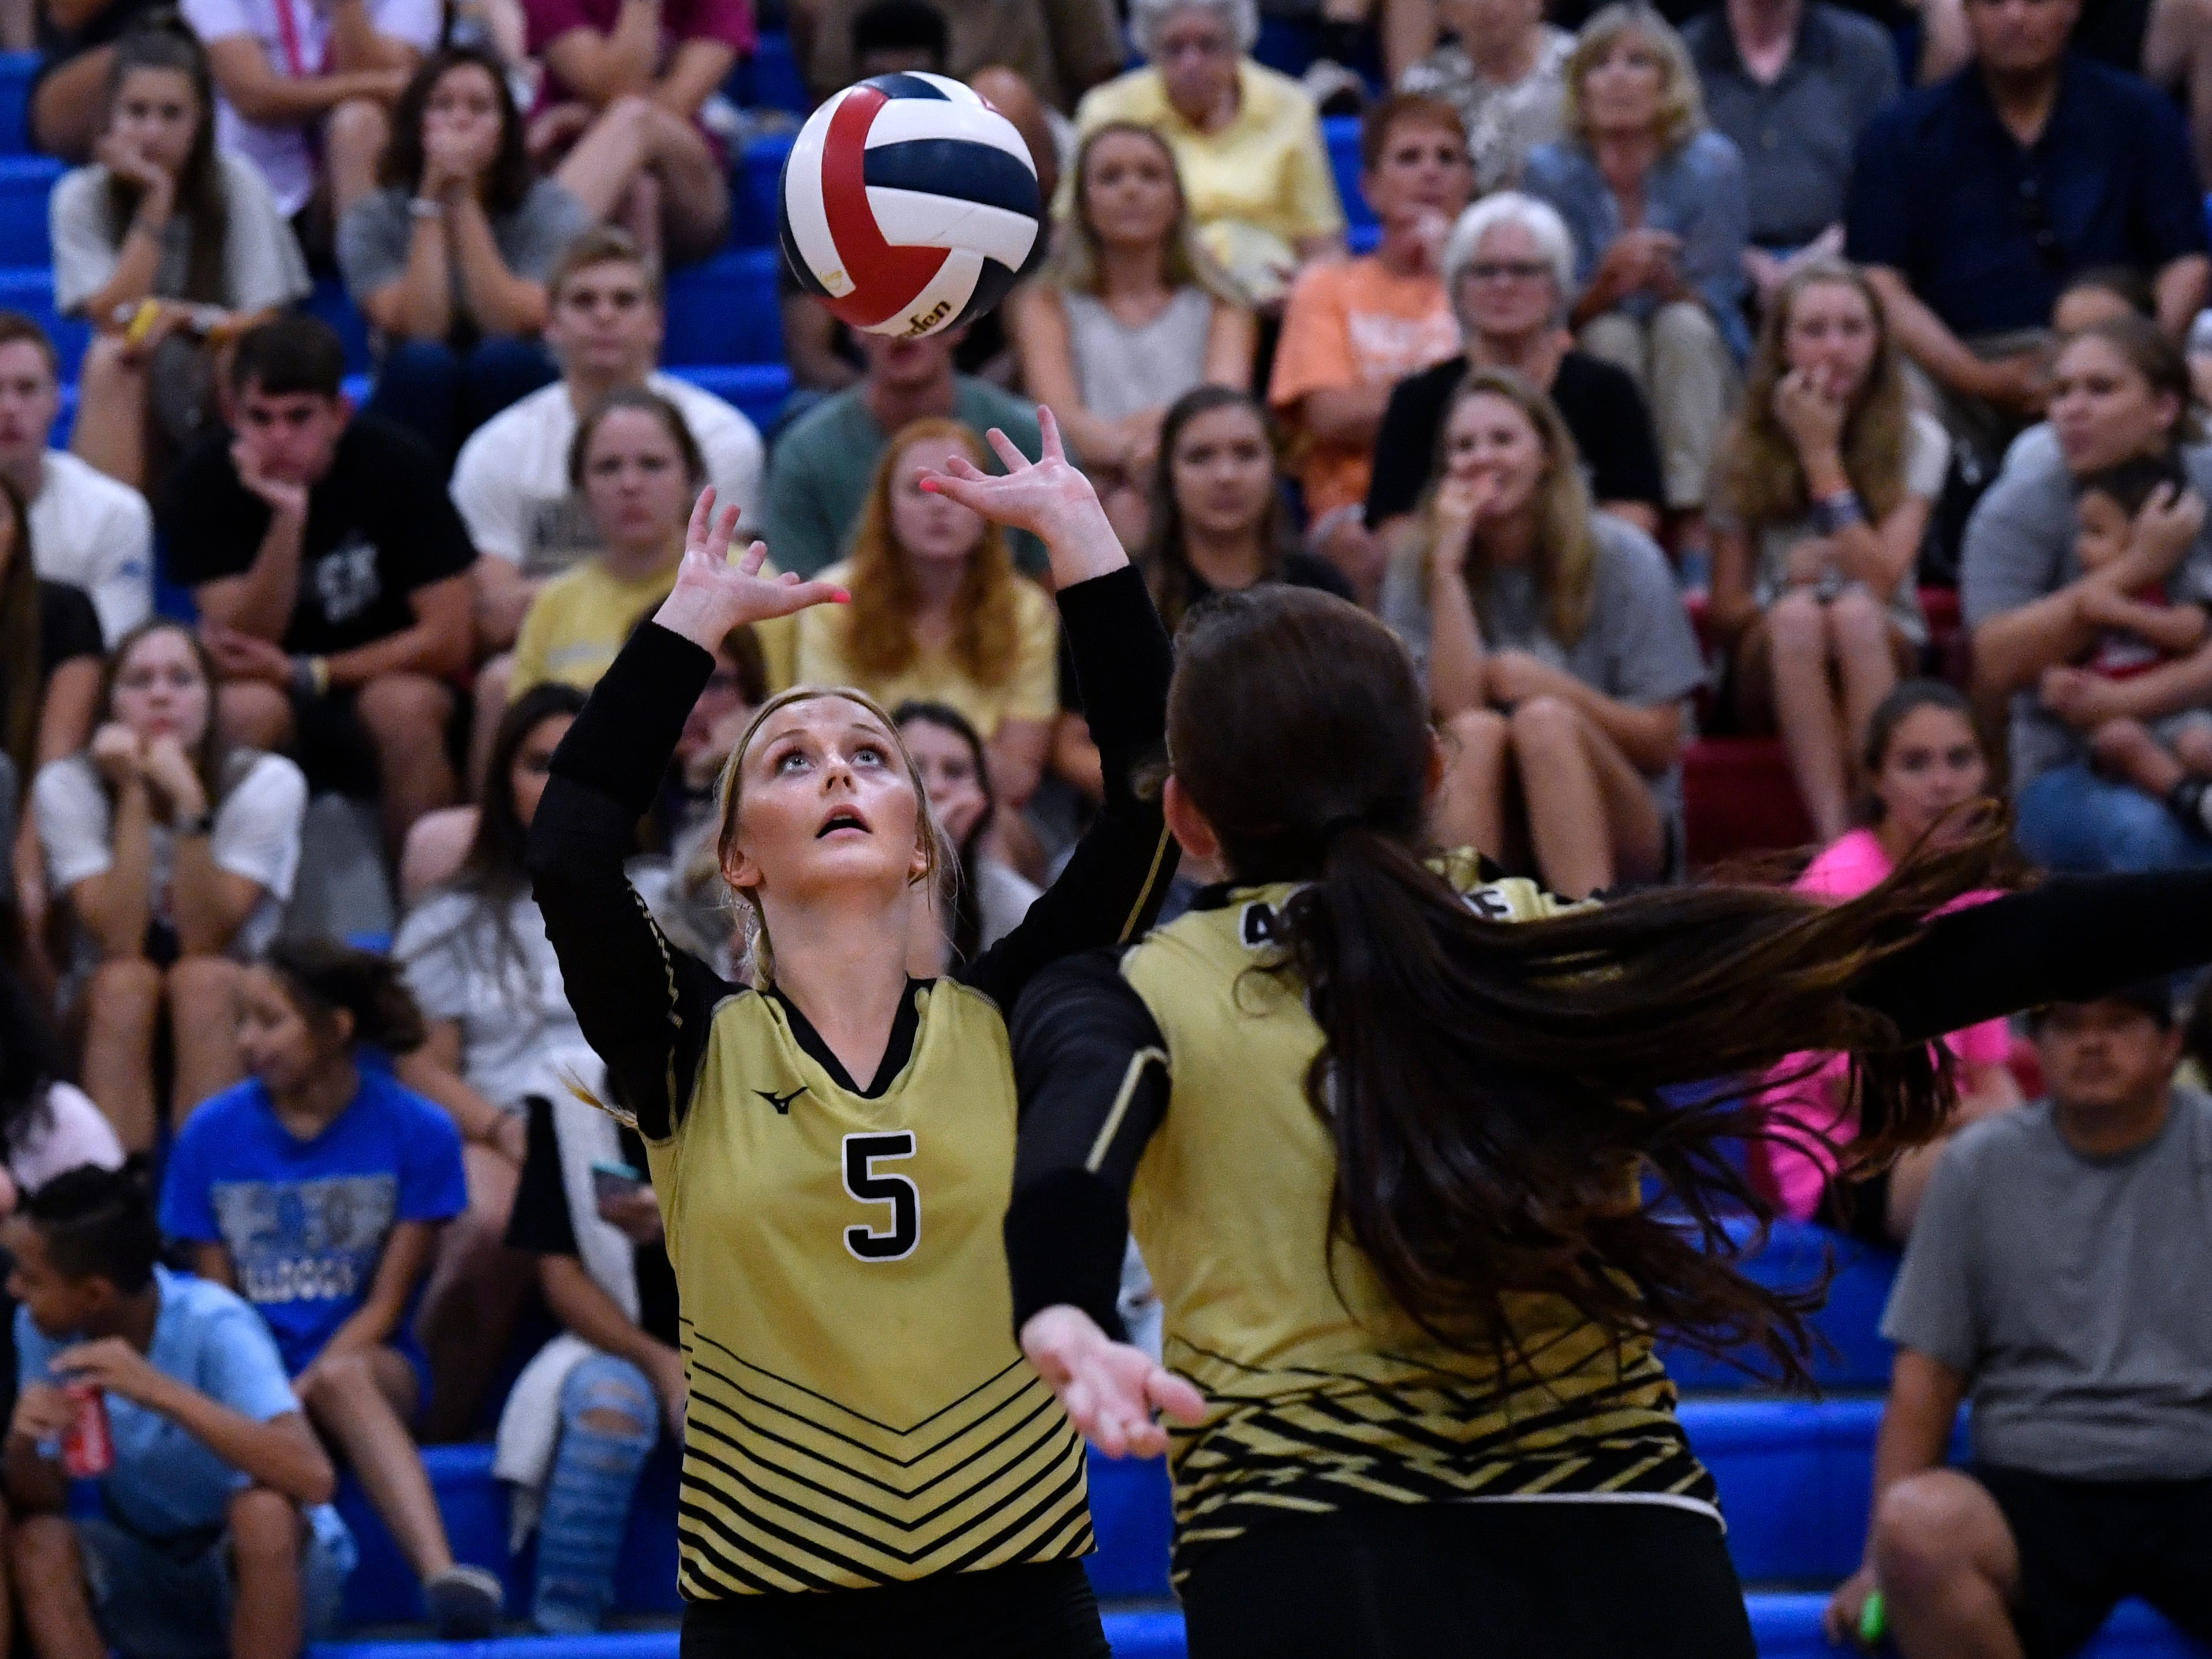 Abilene High's Allison Cooper sets the ball for Sydney Lawler. Abilene High won the crosstown volleyball game Tuesday August 7, 2018 against Cooper High in the best-of-five match, 25-21, 16-25, 25-20, 17-25, 15-7.